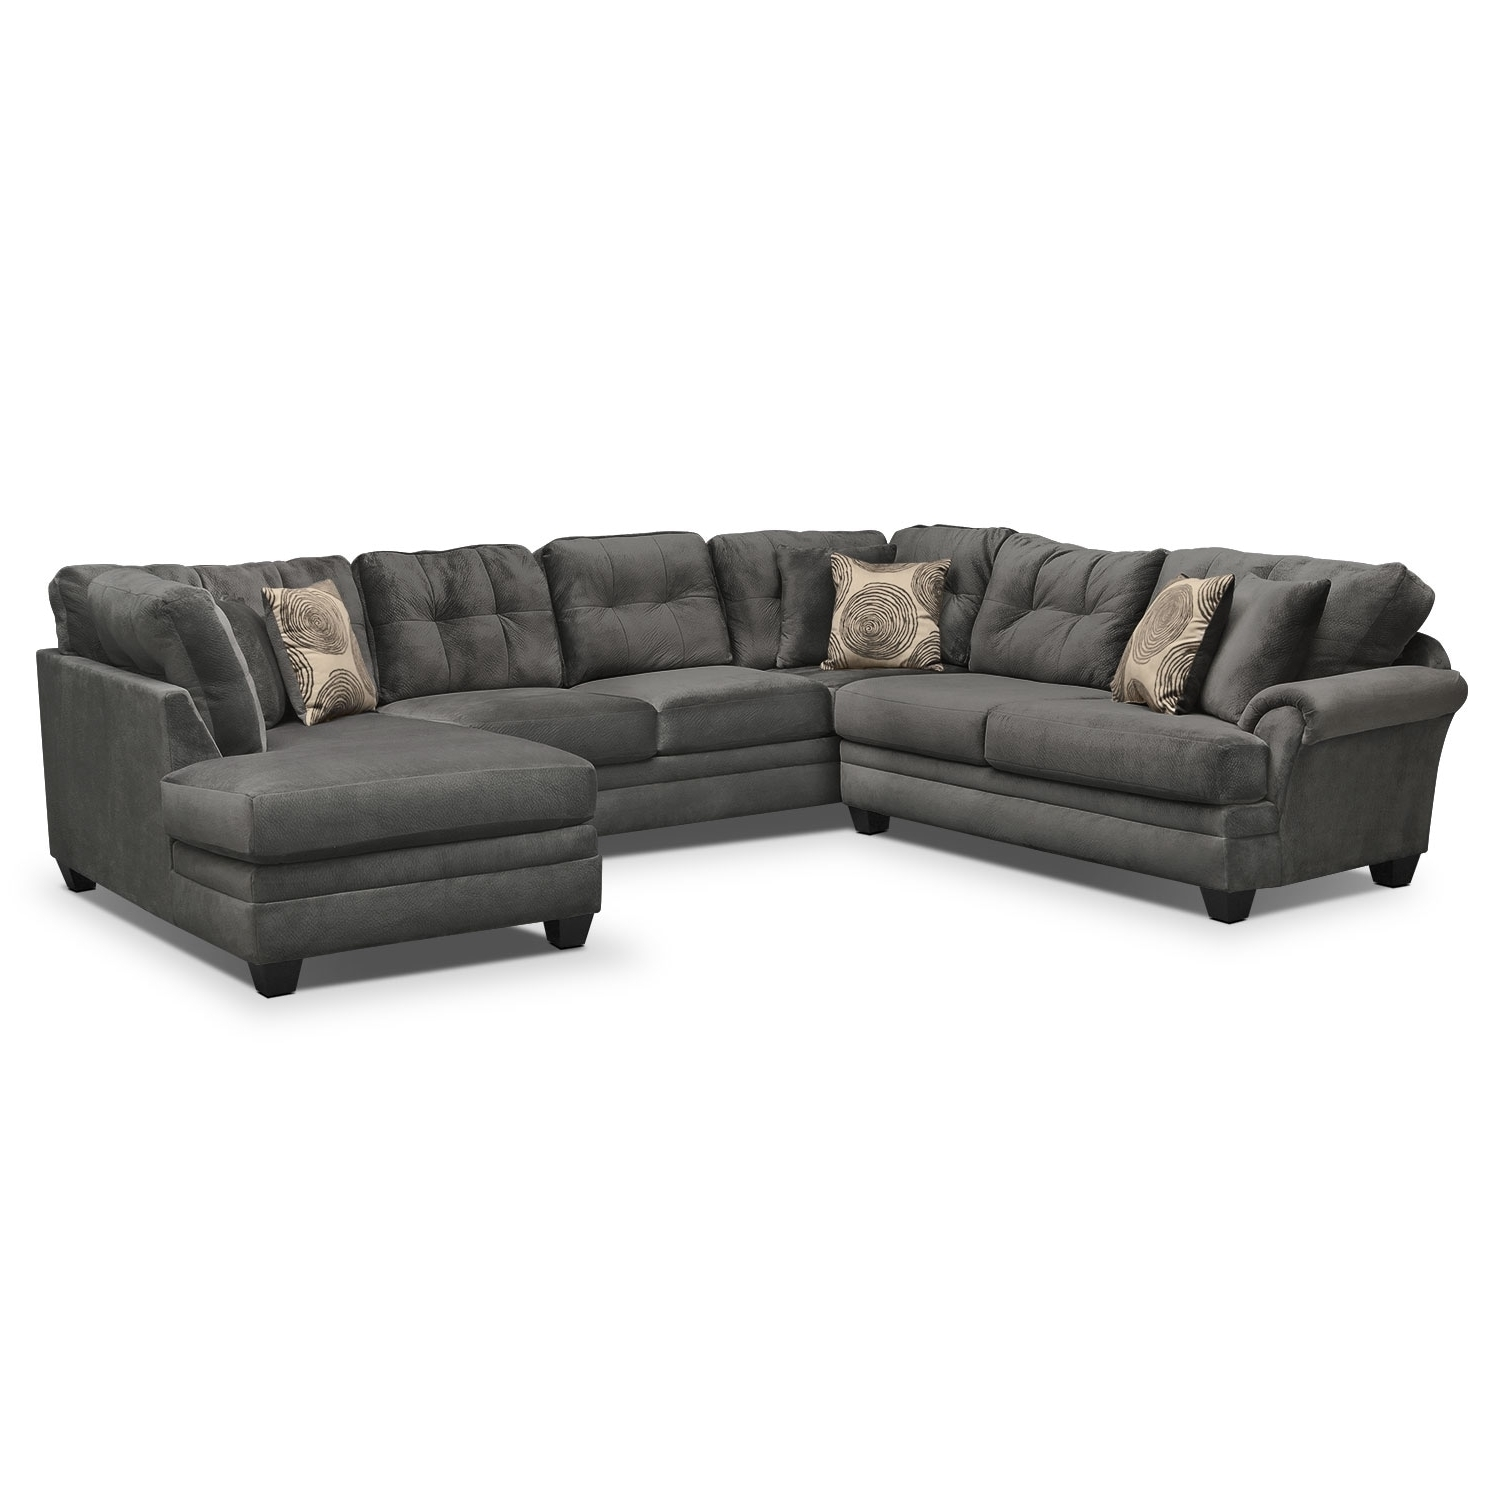 Sectional Sofas At Buffalo Ny Inside Most Current Sectional Couches Buffalo Ny (View 11 of 15)